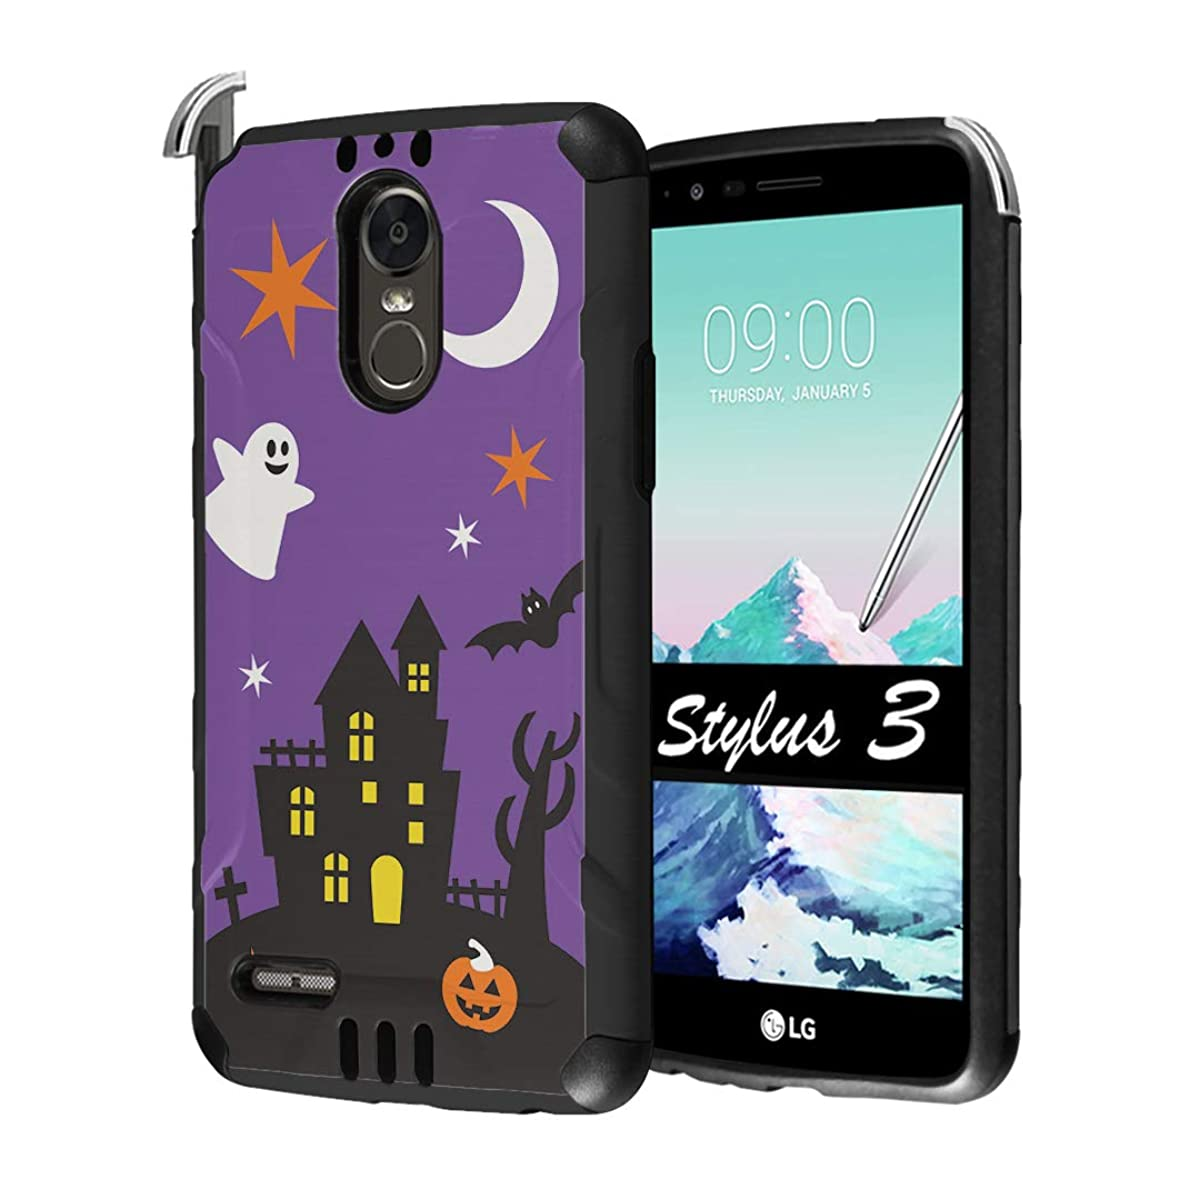 Capsule Case Compatible with LG Stylo 3, LG Stylo 3 Plus [Hybrid Dual Layer Supports Qi Wireless Charging Slim Defender Armor Combat Case Black] for LG Stylus 3 - (Halloween)